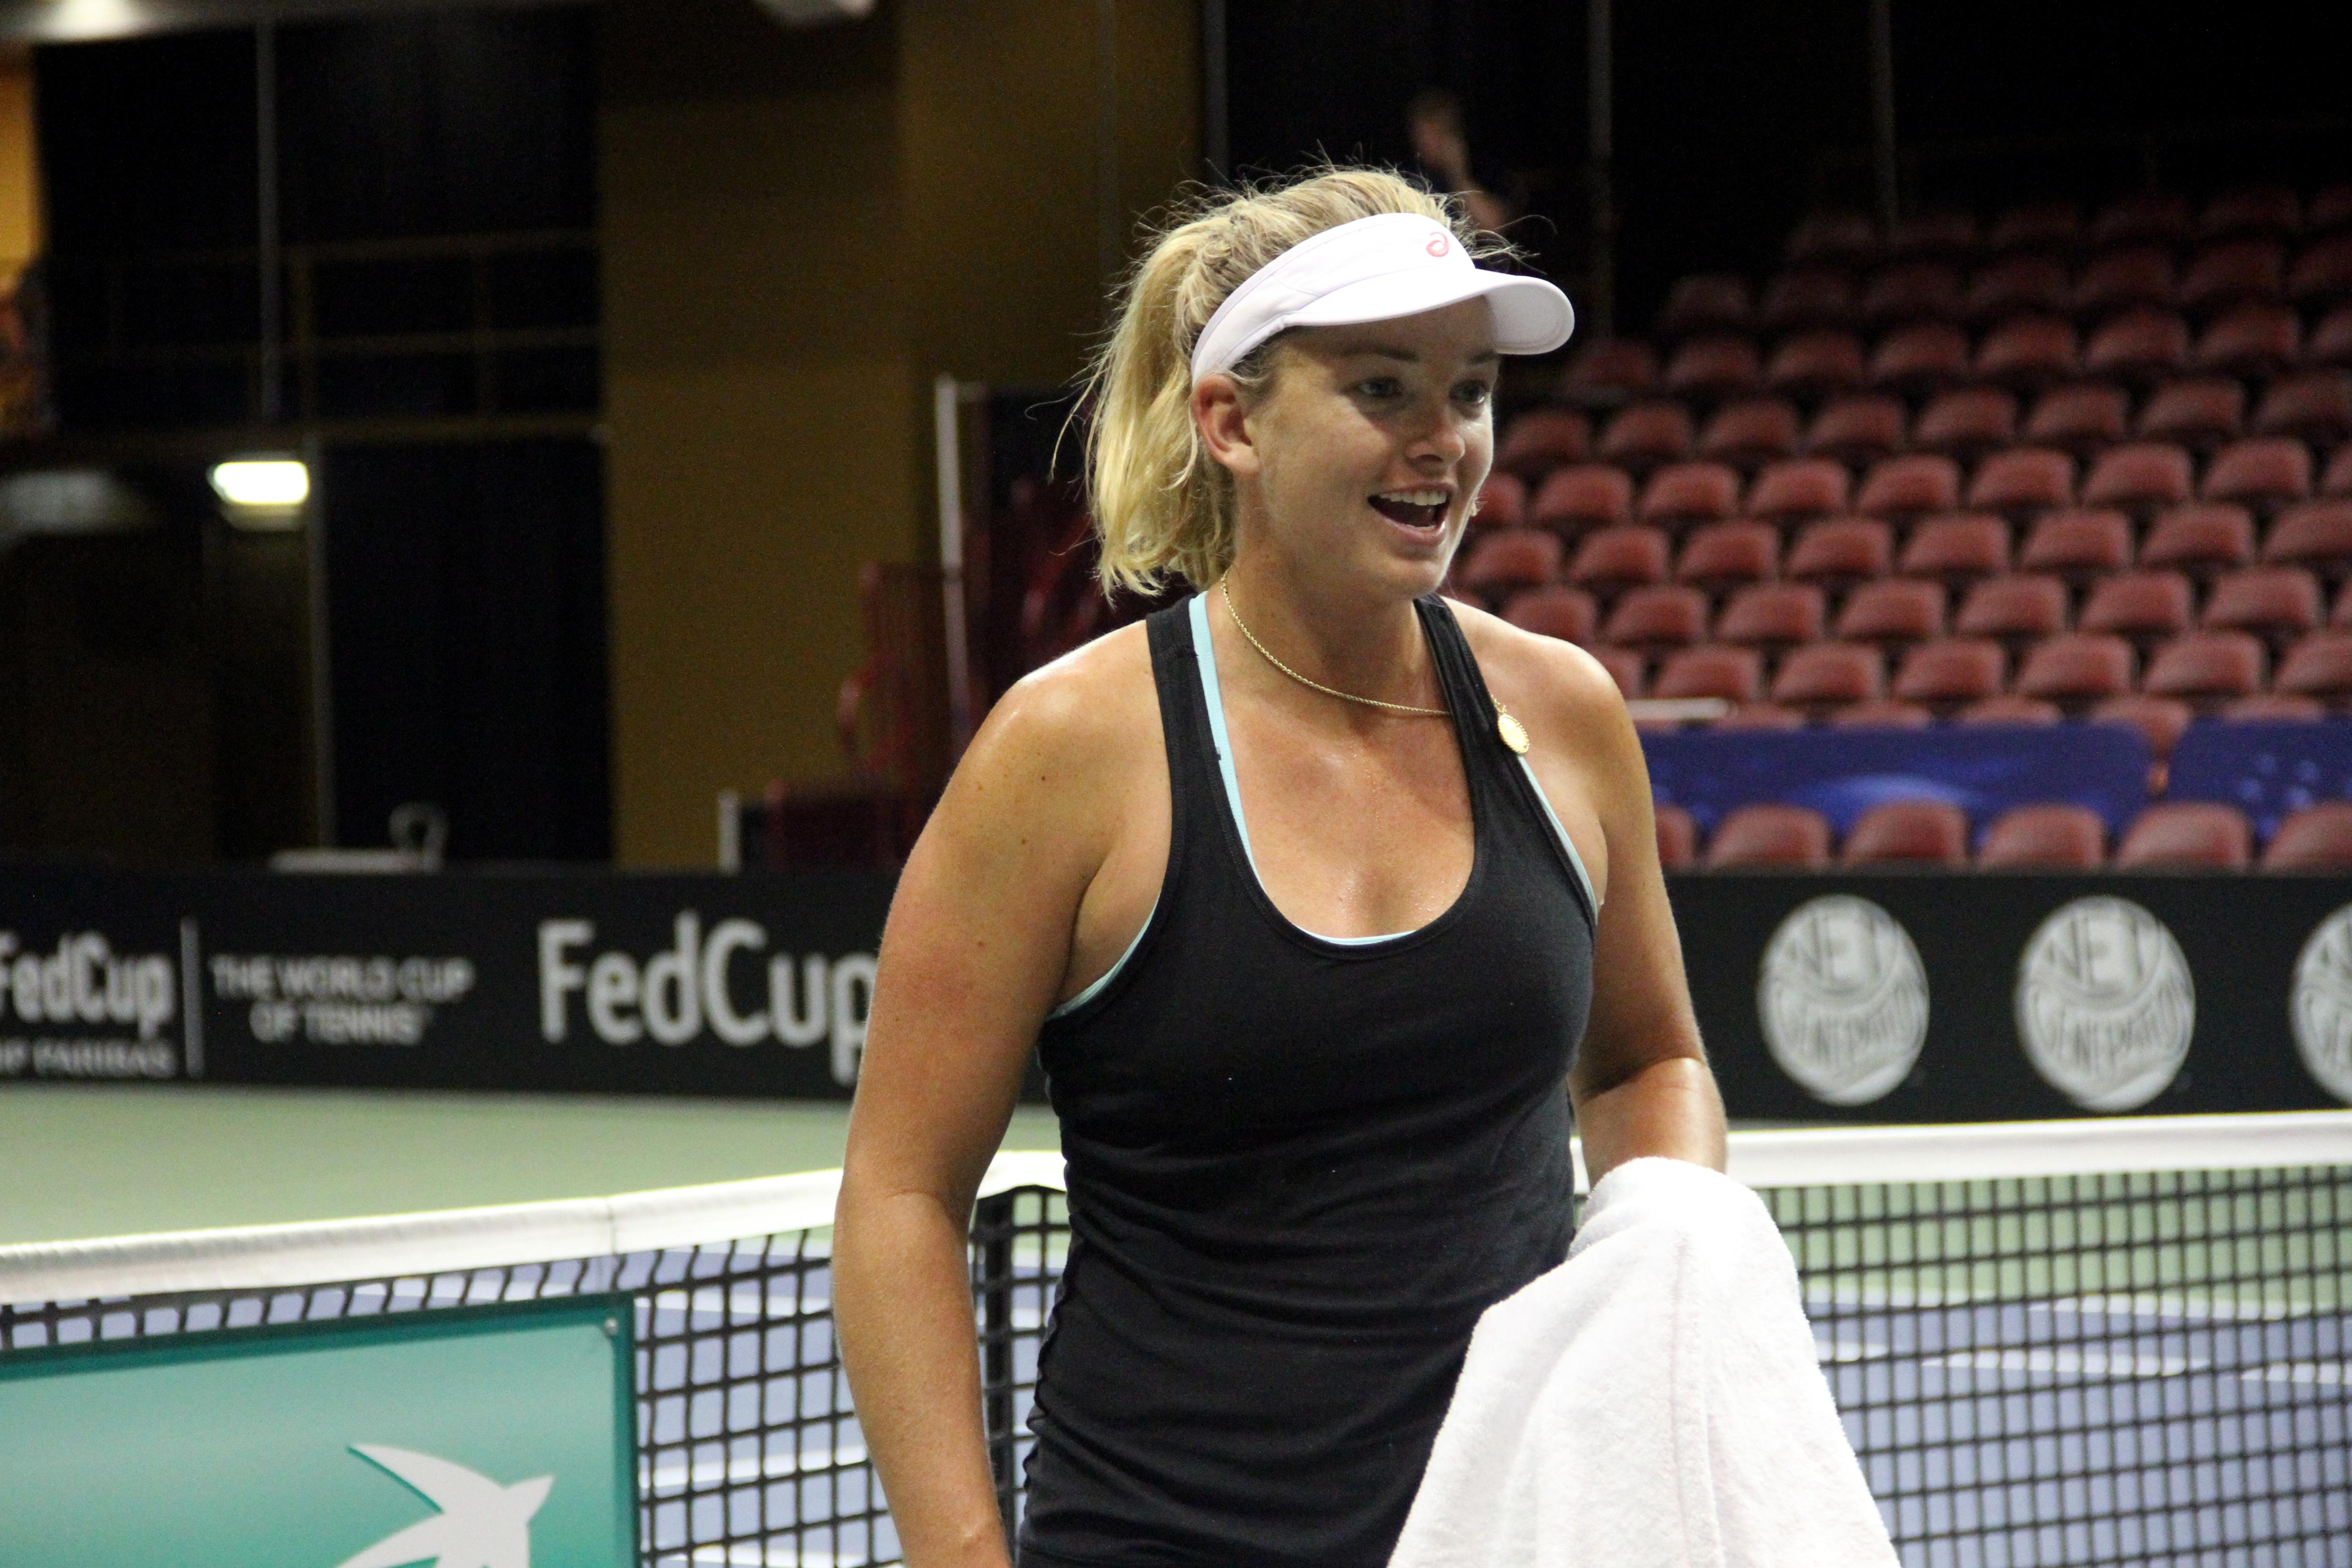 CoCo Vandeweghe practices at the US Cellular Center on Feb. 7, 2018, ahead of the Fed Cup. (Photo credit: WLOS Staff)